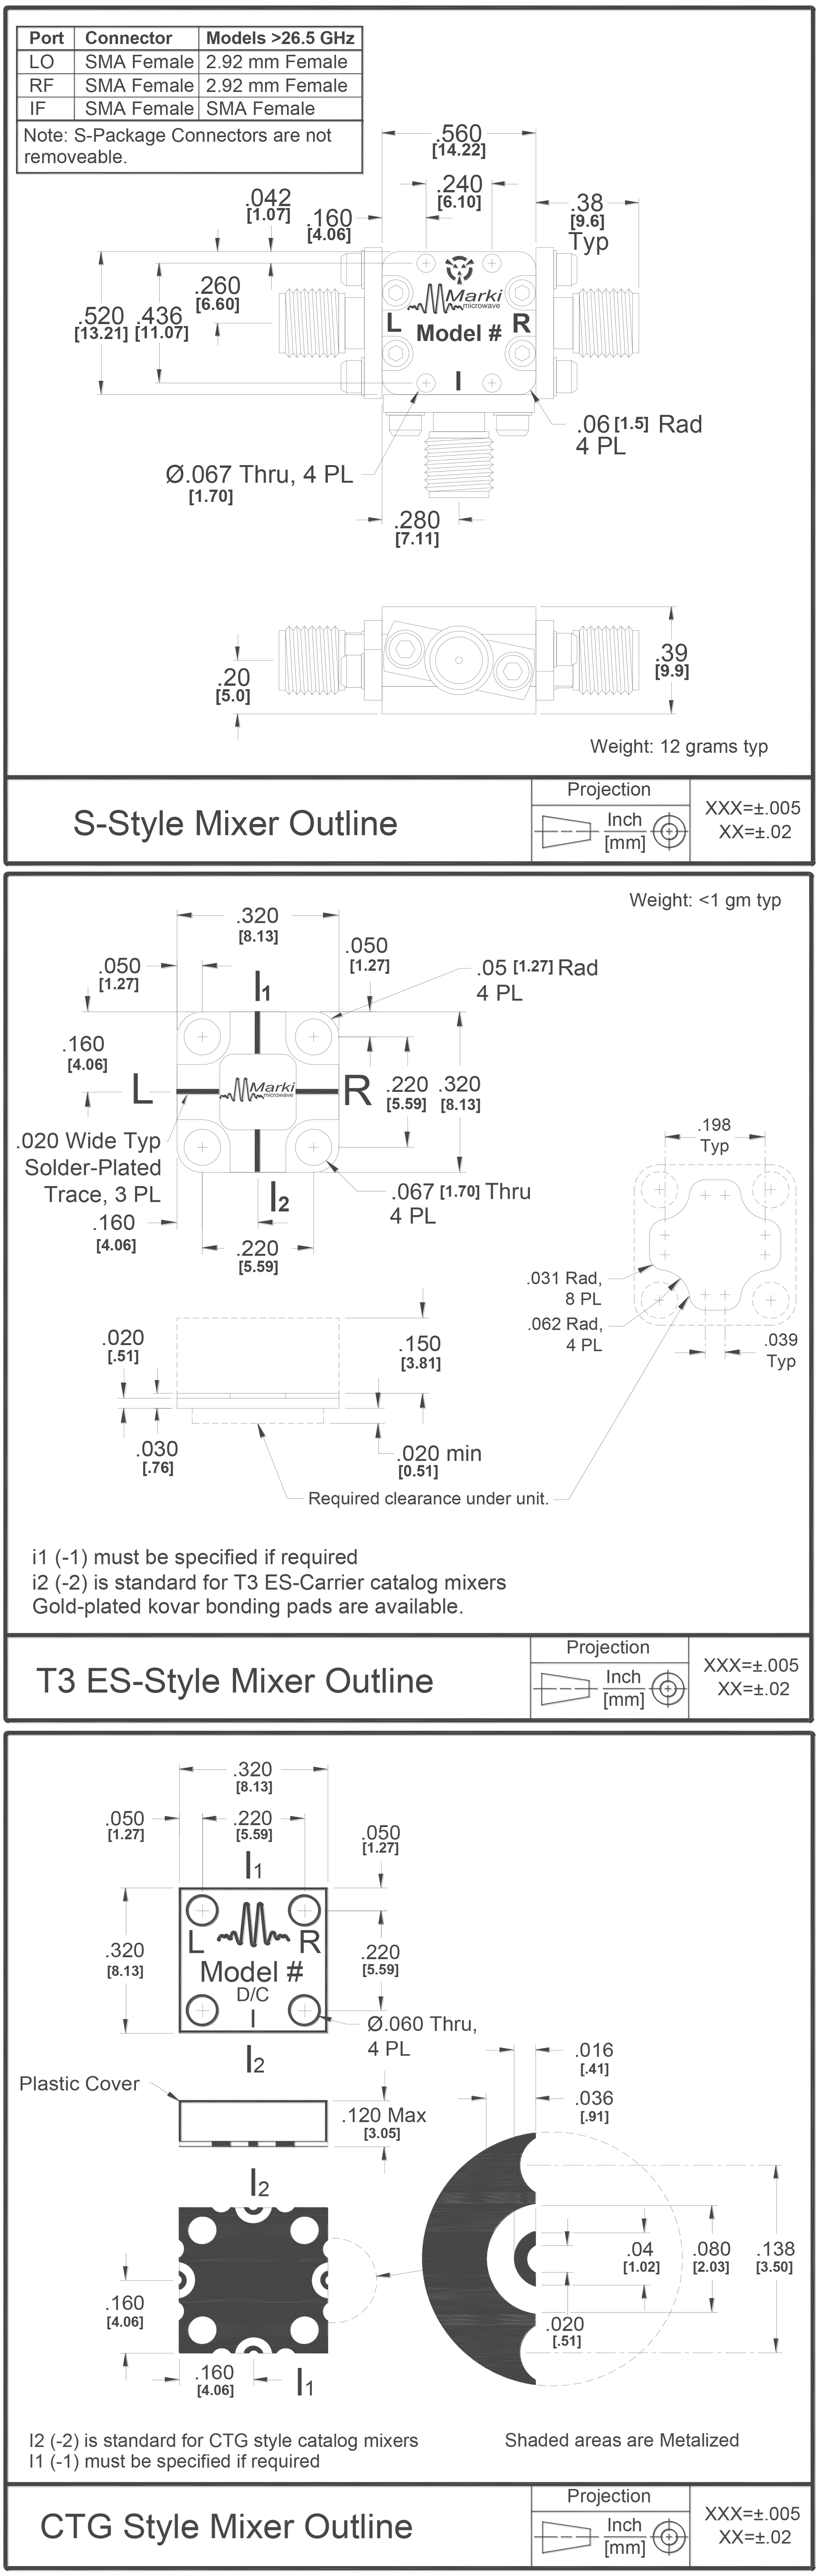 T3H-20 Mixer Package Diagram